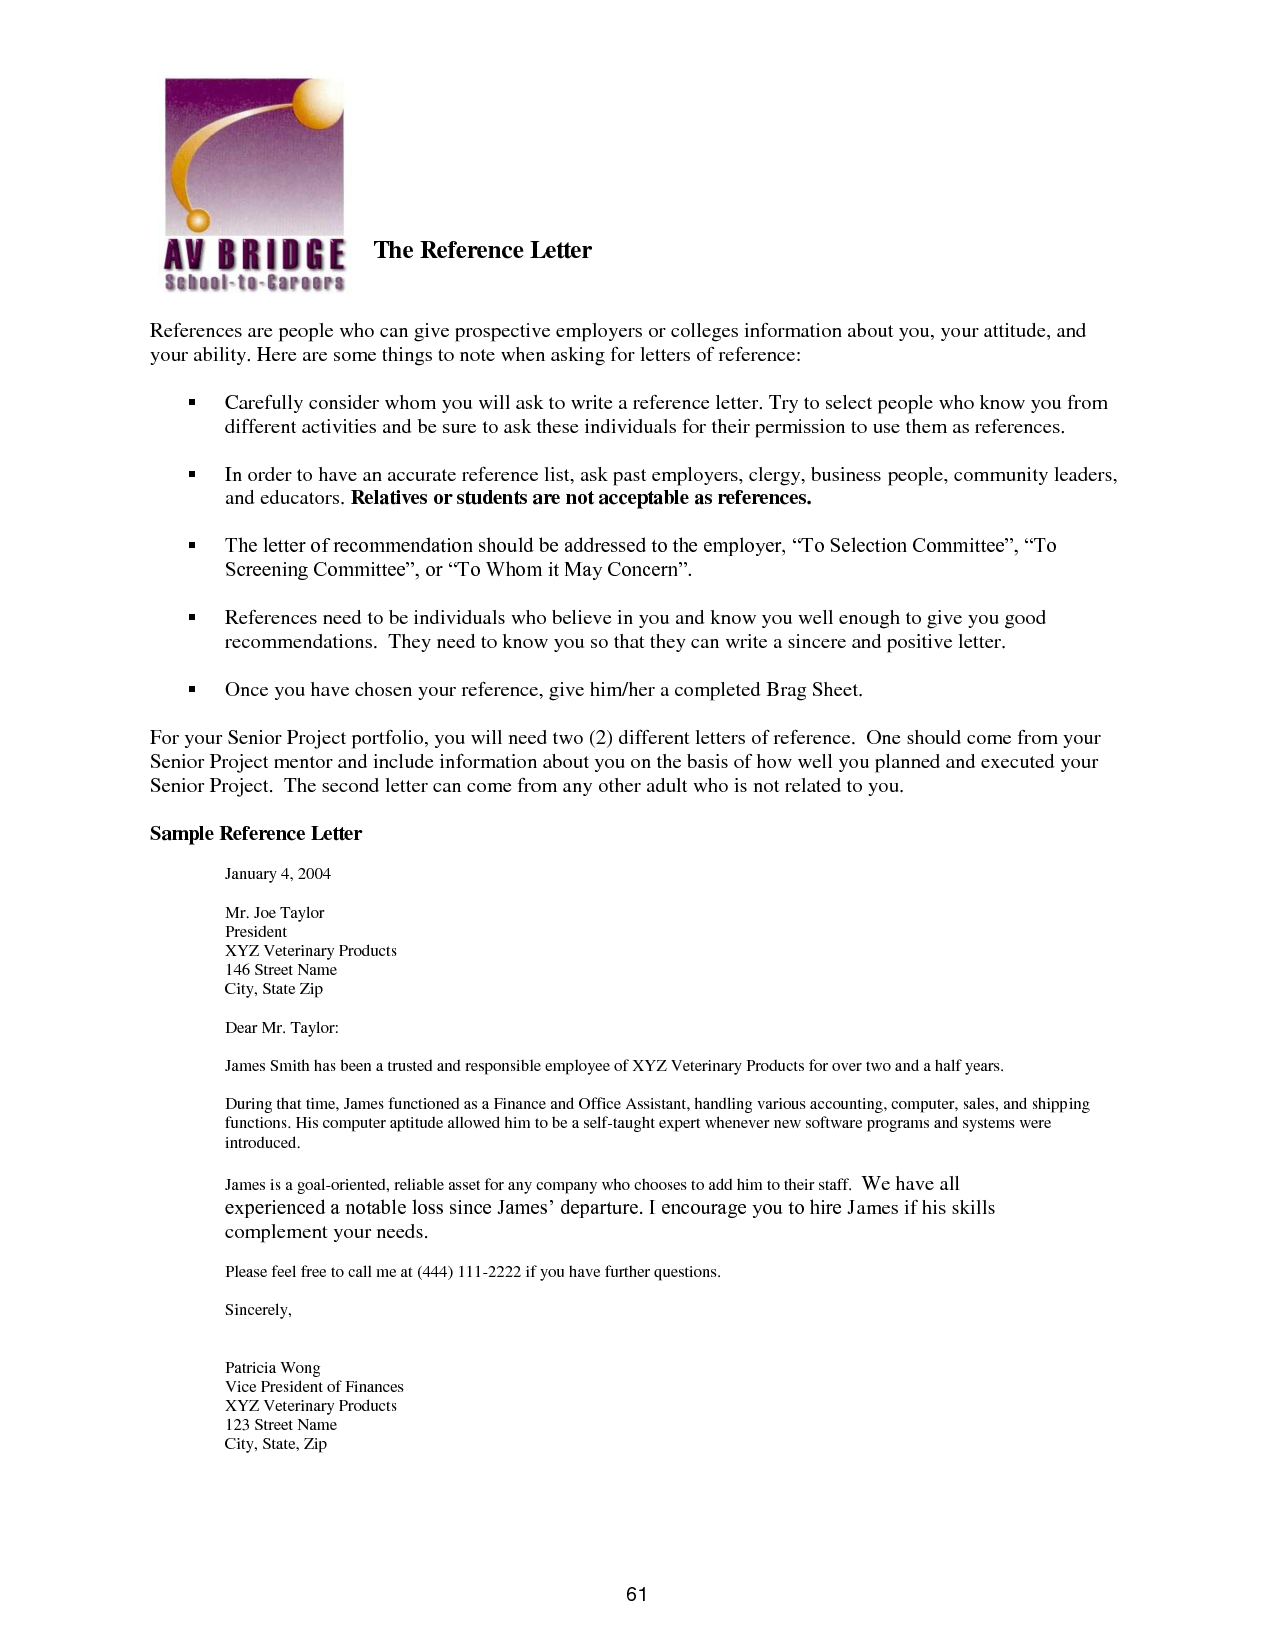 Brag Sheet Template for Letter Of Recommendation - Letter Re Mendation after Work Experience No Sample Reference